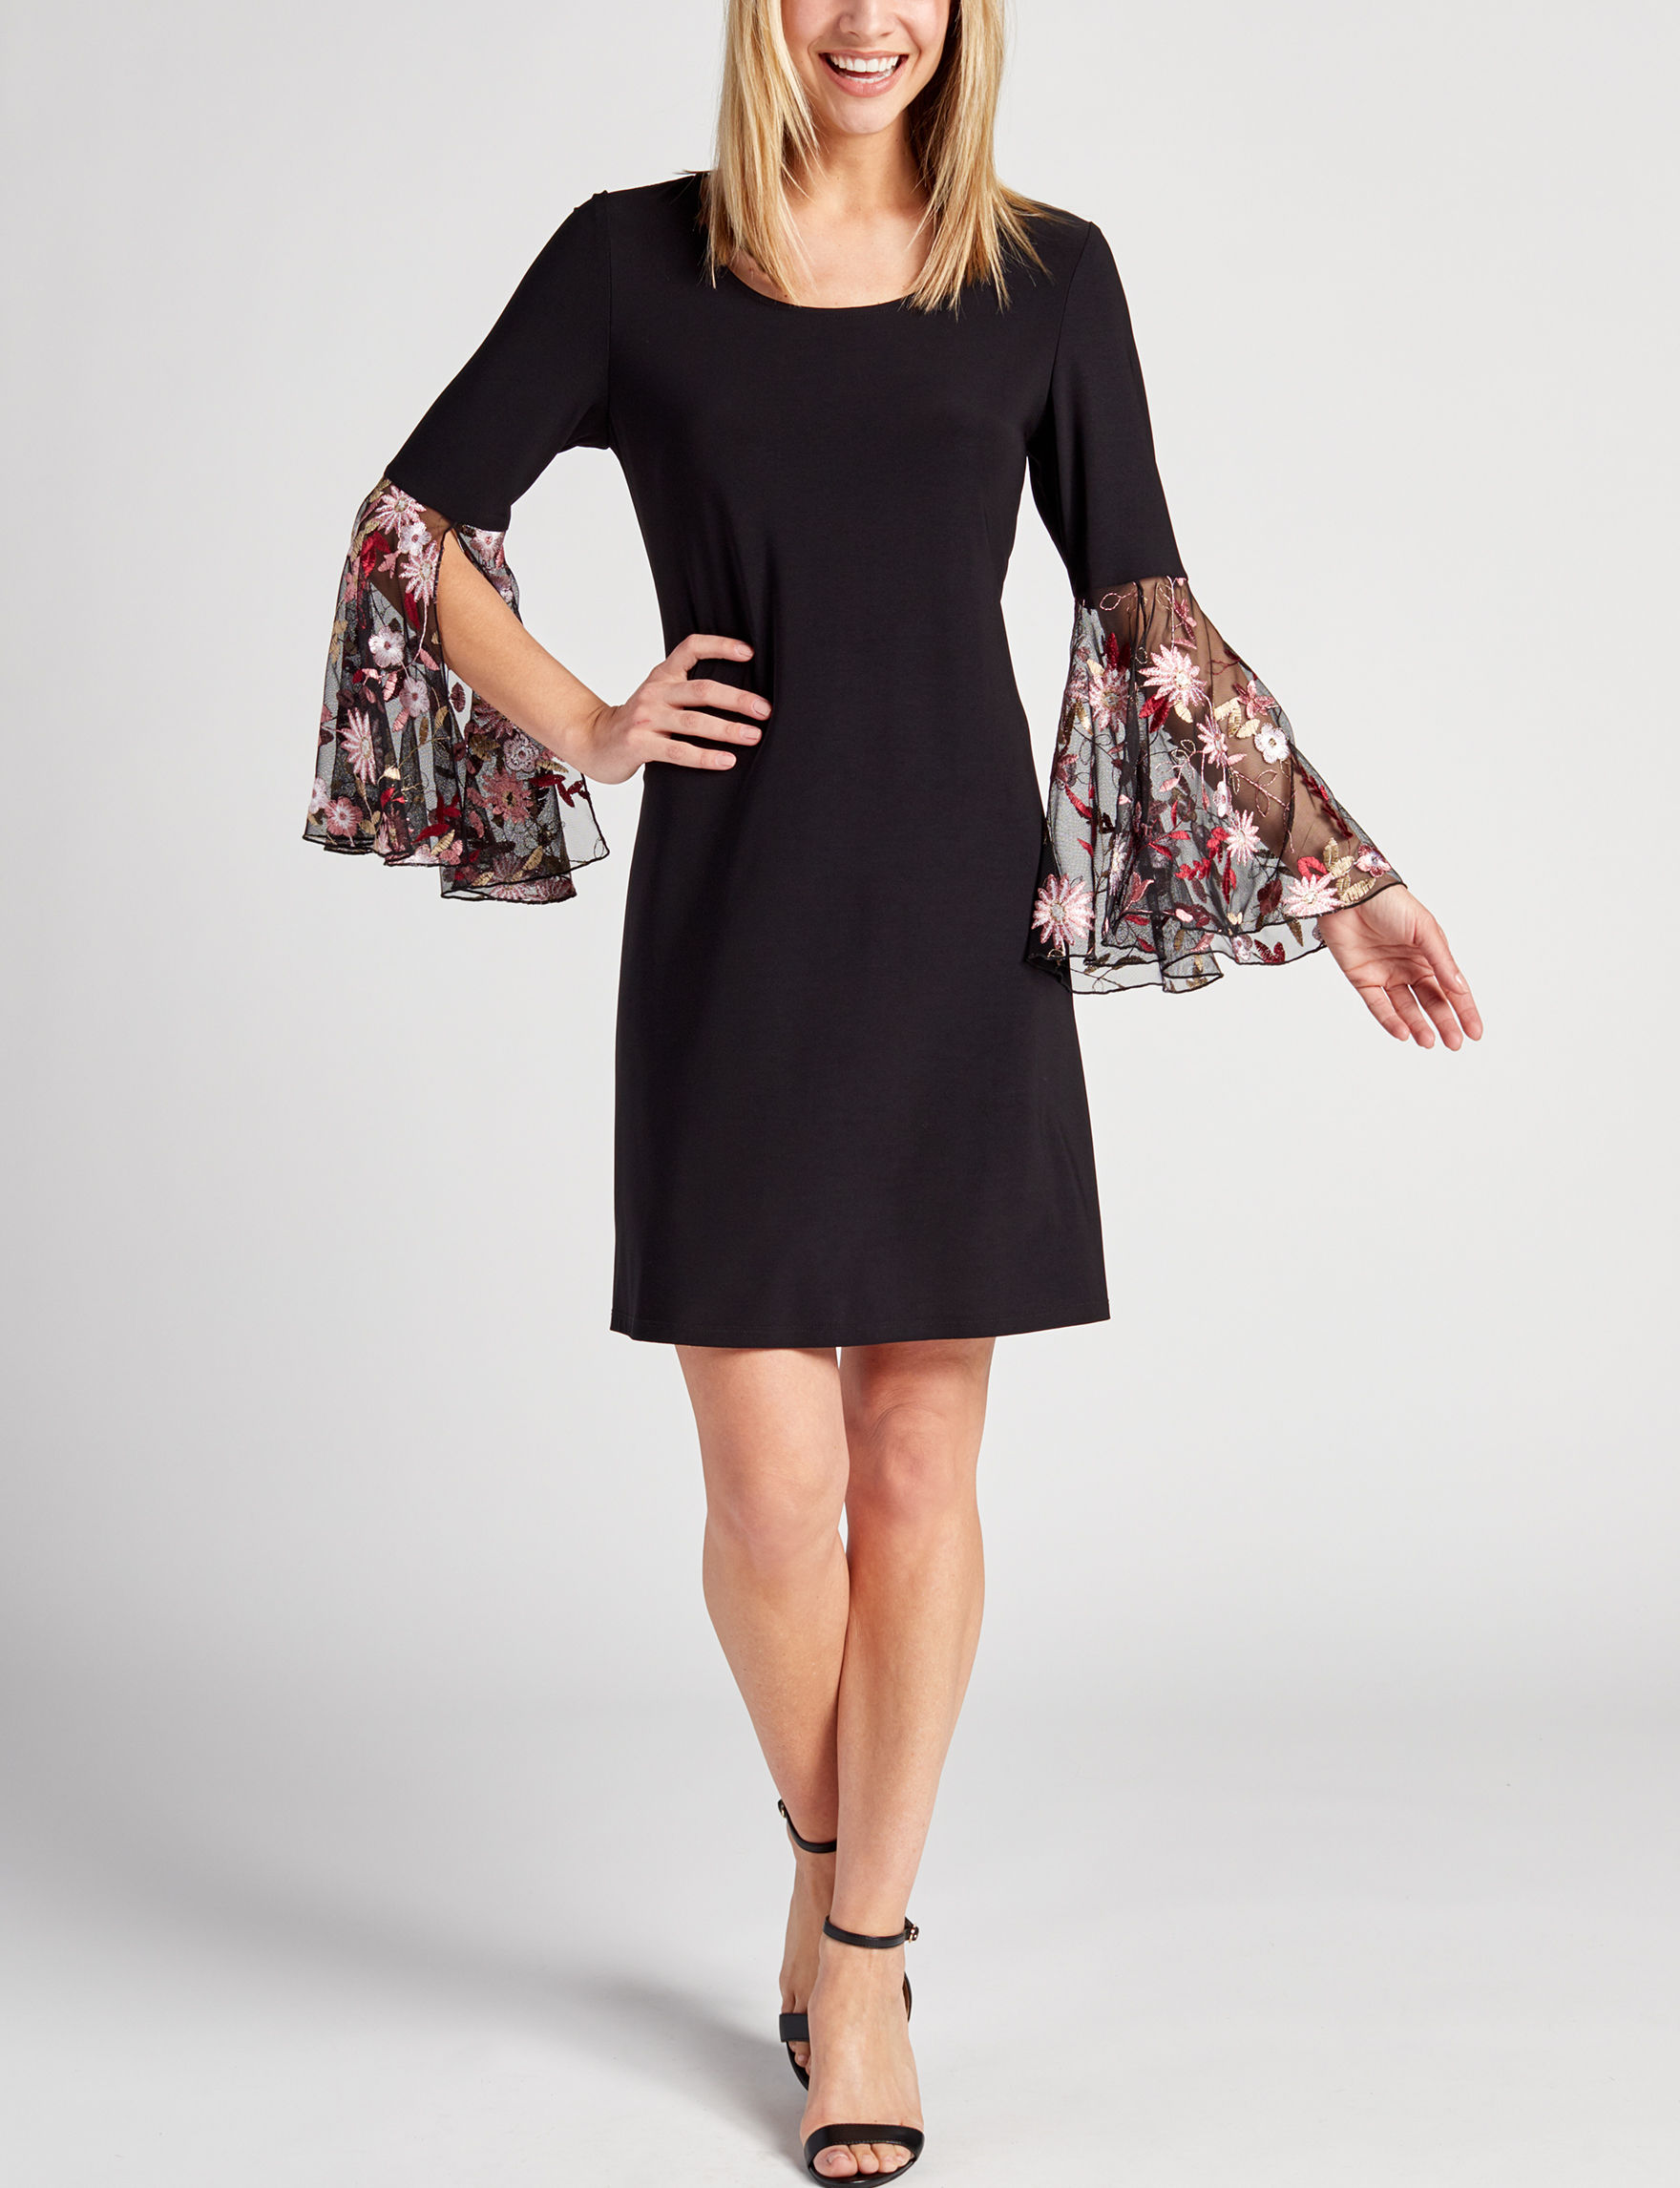 MSK Black Everyday & Casual Shift Dresses